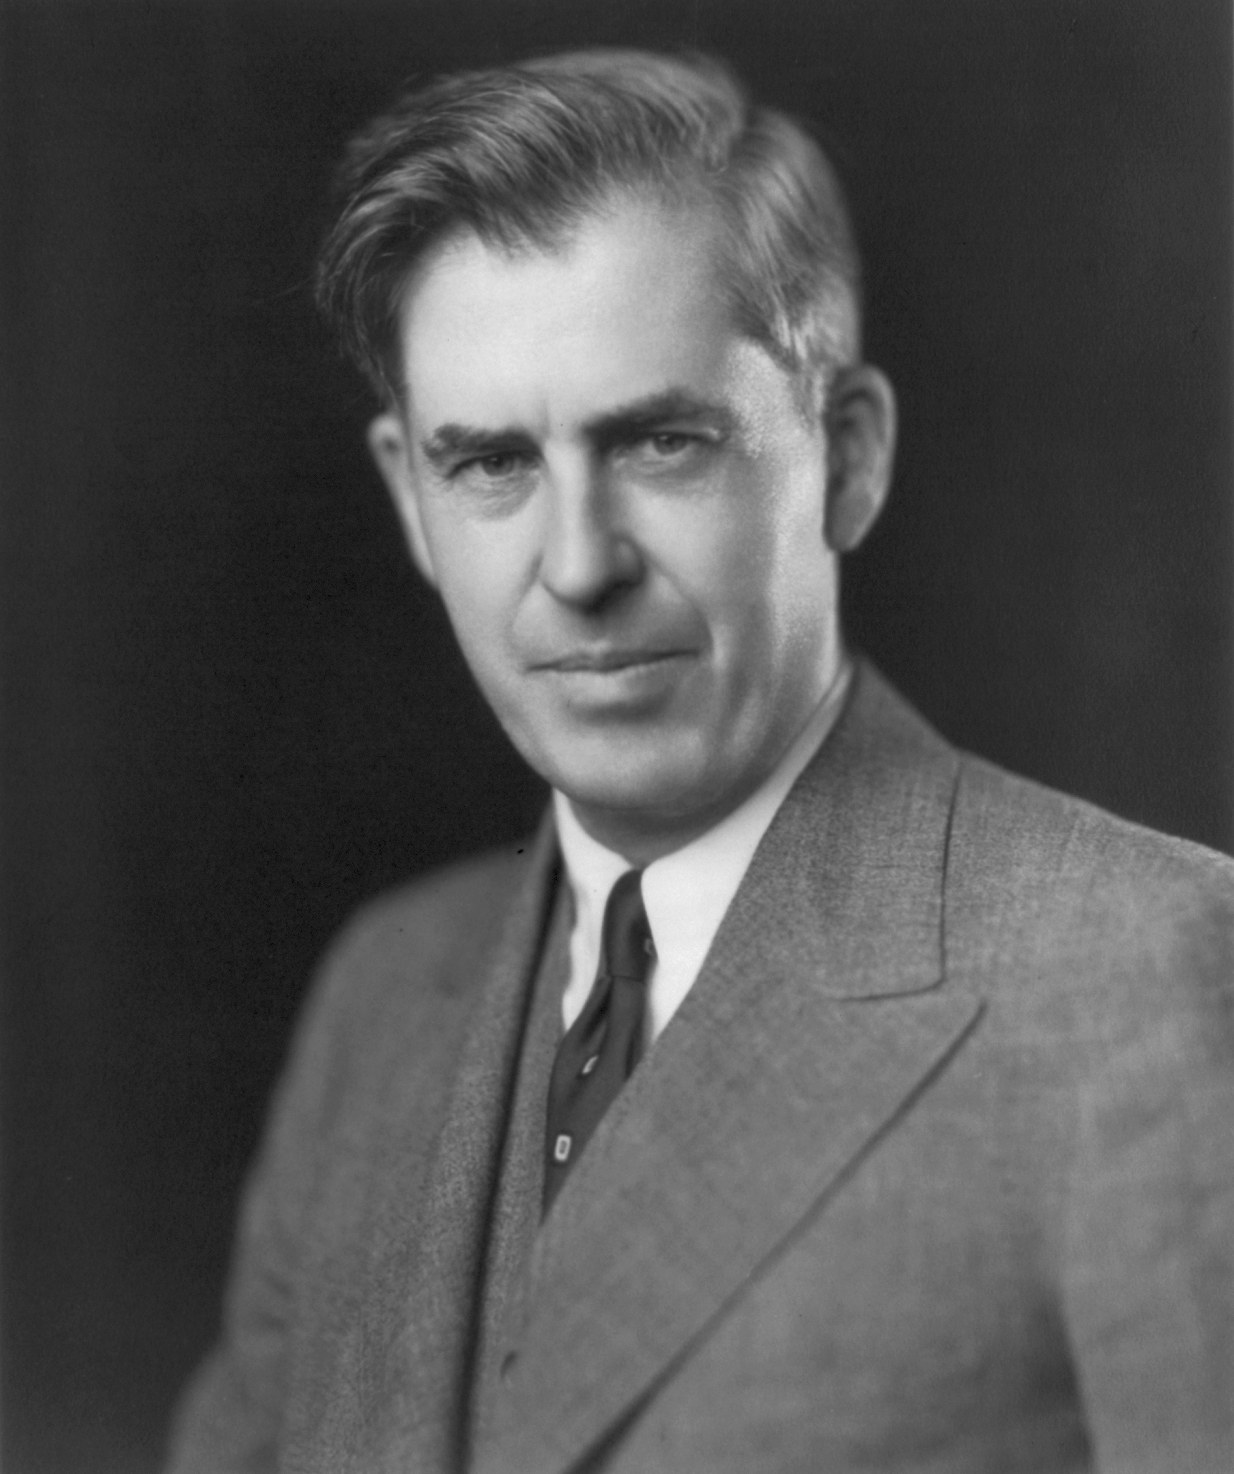 We could use a man like Henry Wallace again?